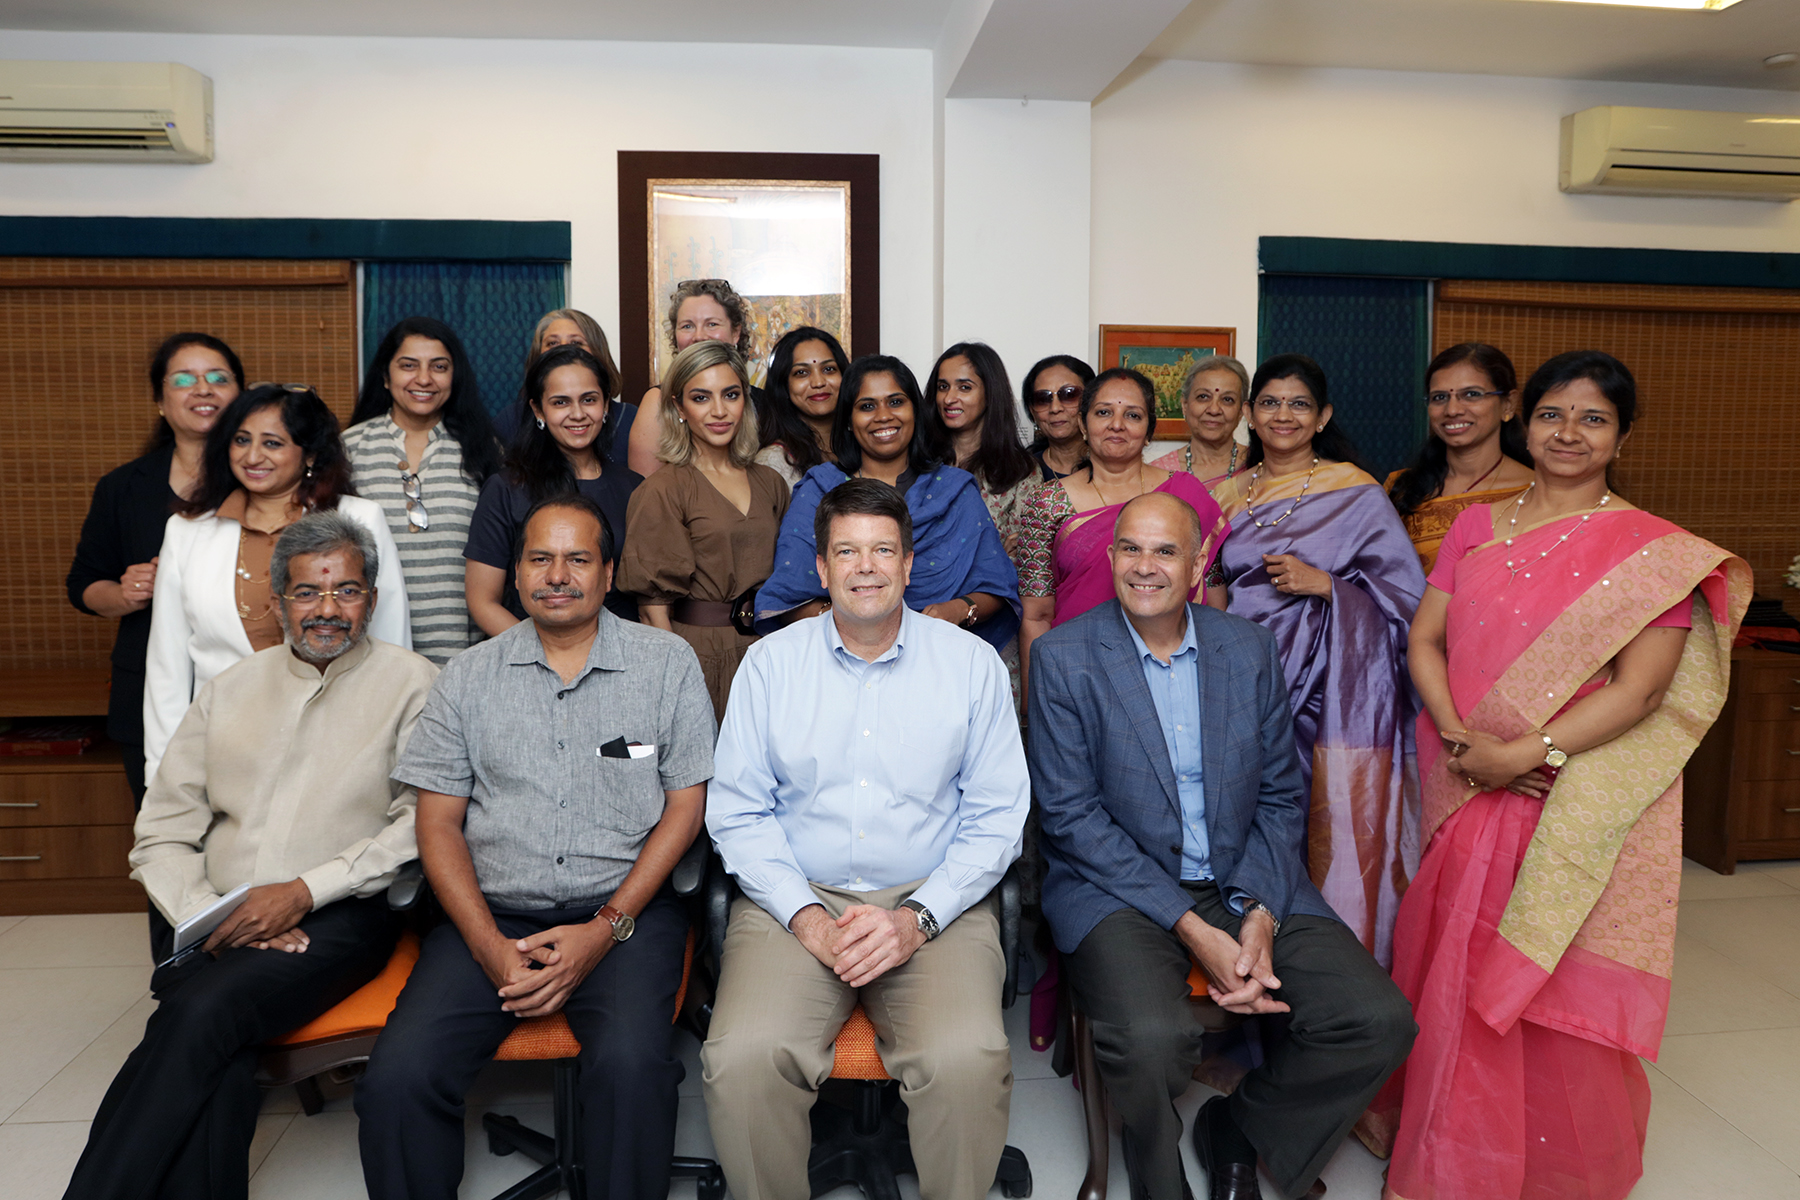 Meeting of the Minds – A High Tea with Leaders